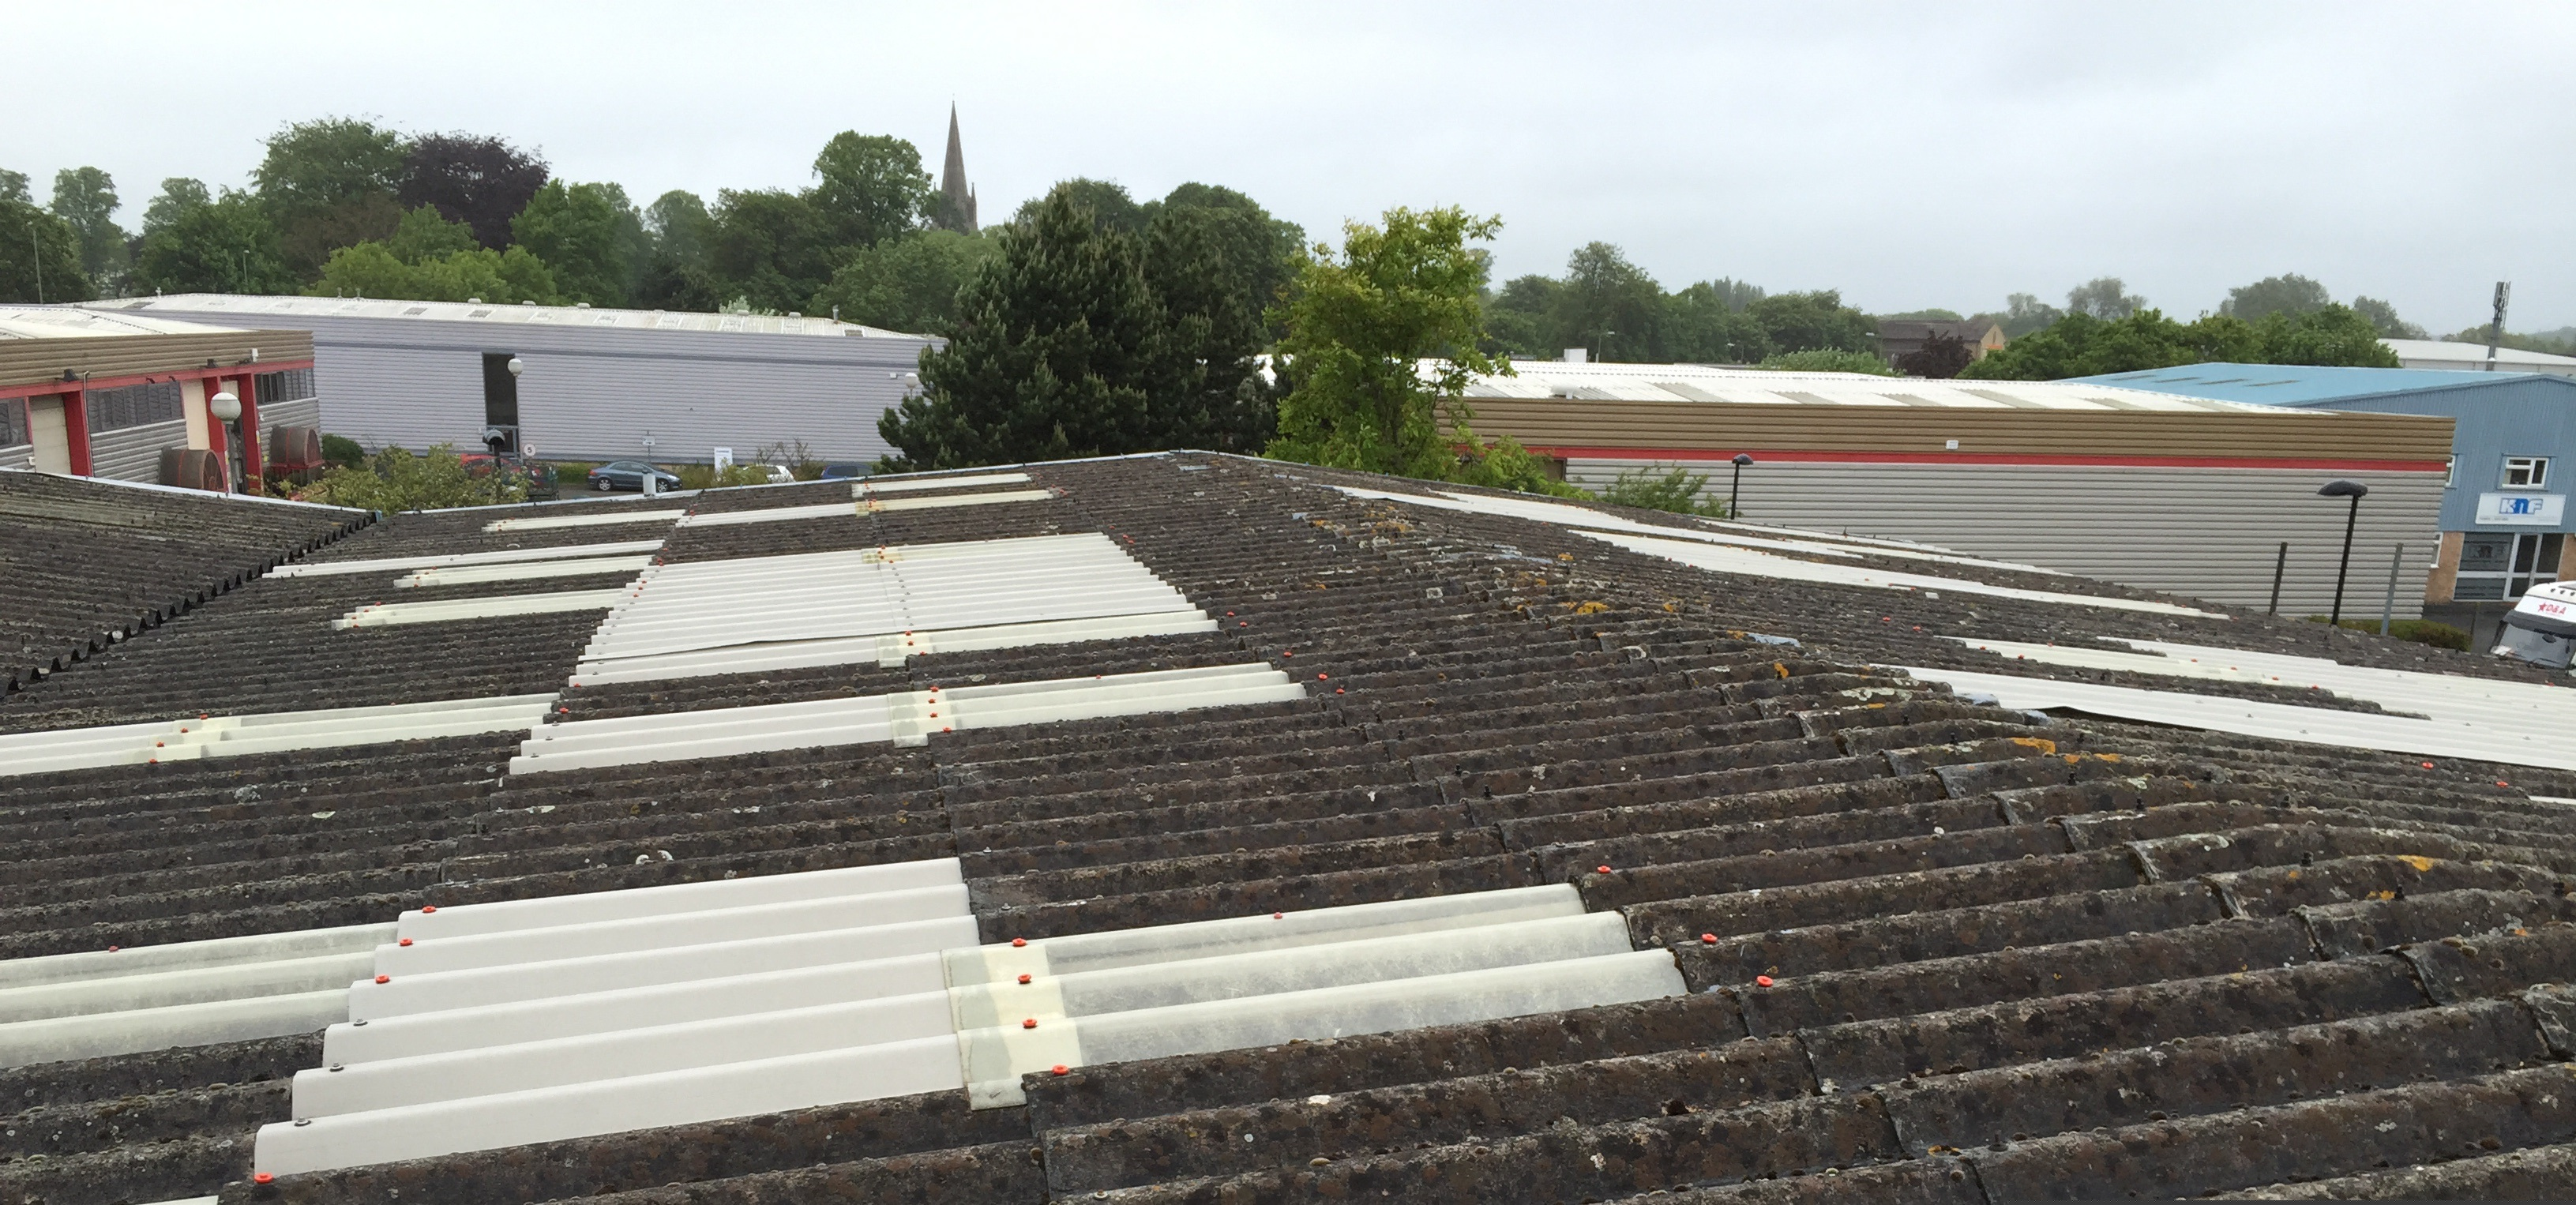 Over Sheeting Asbestos Roofs | Asbestos Roof Repair